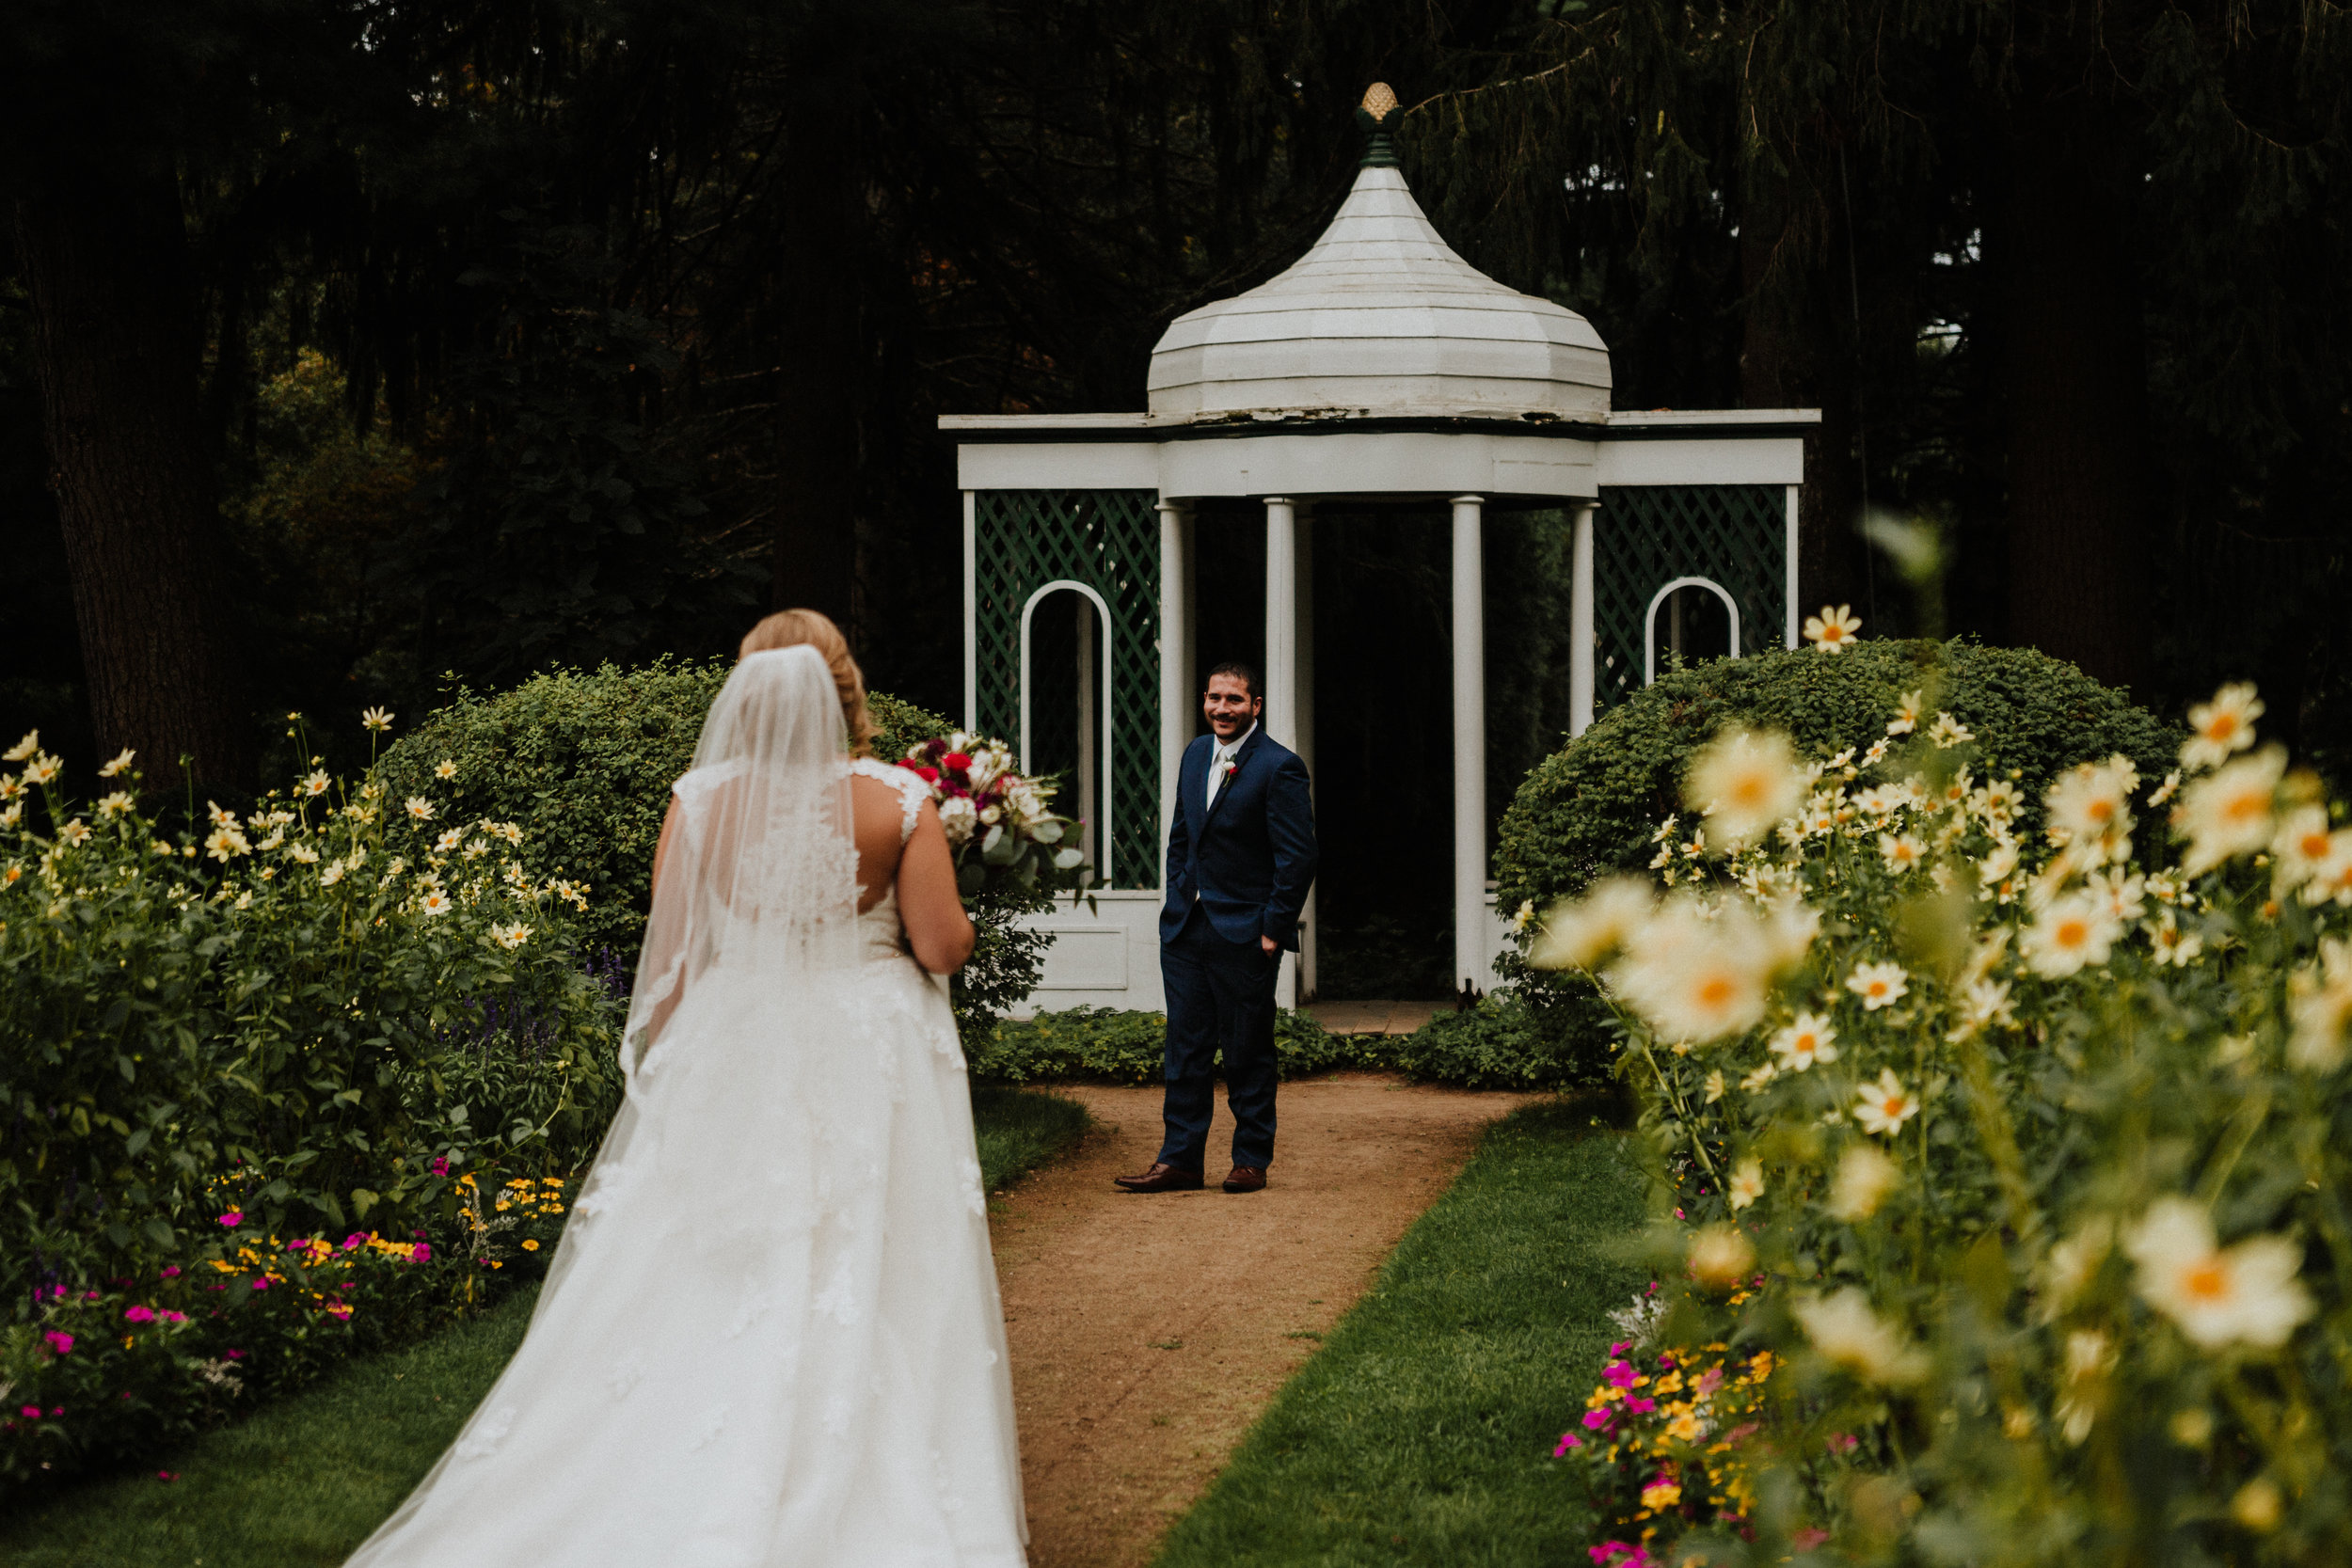 Victoria&Chris_Married_2_ShelbyChariPhotography_0908_2018-10.jpg